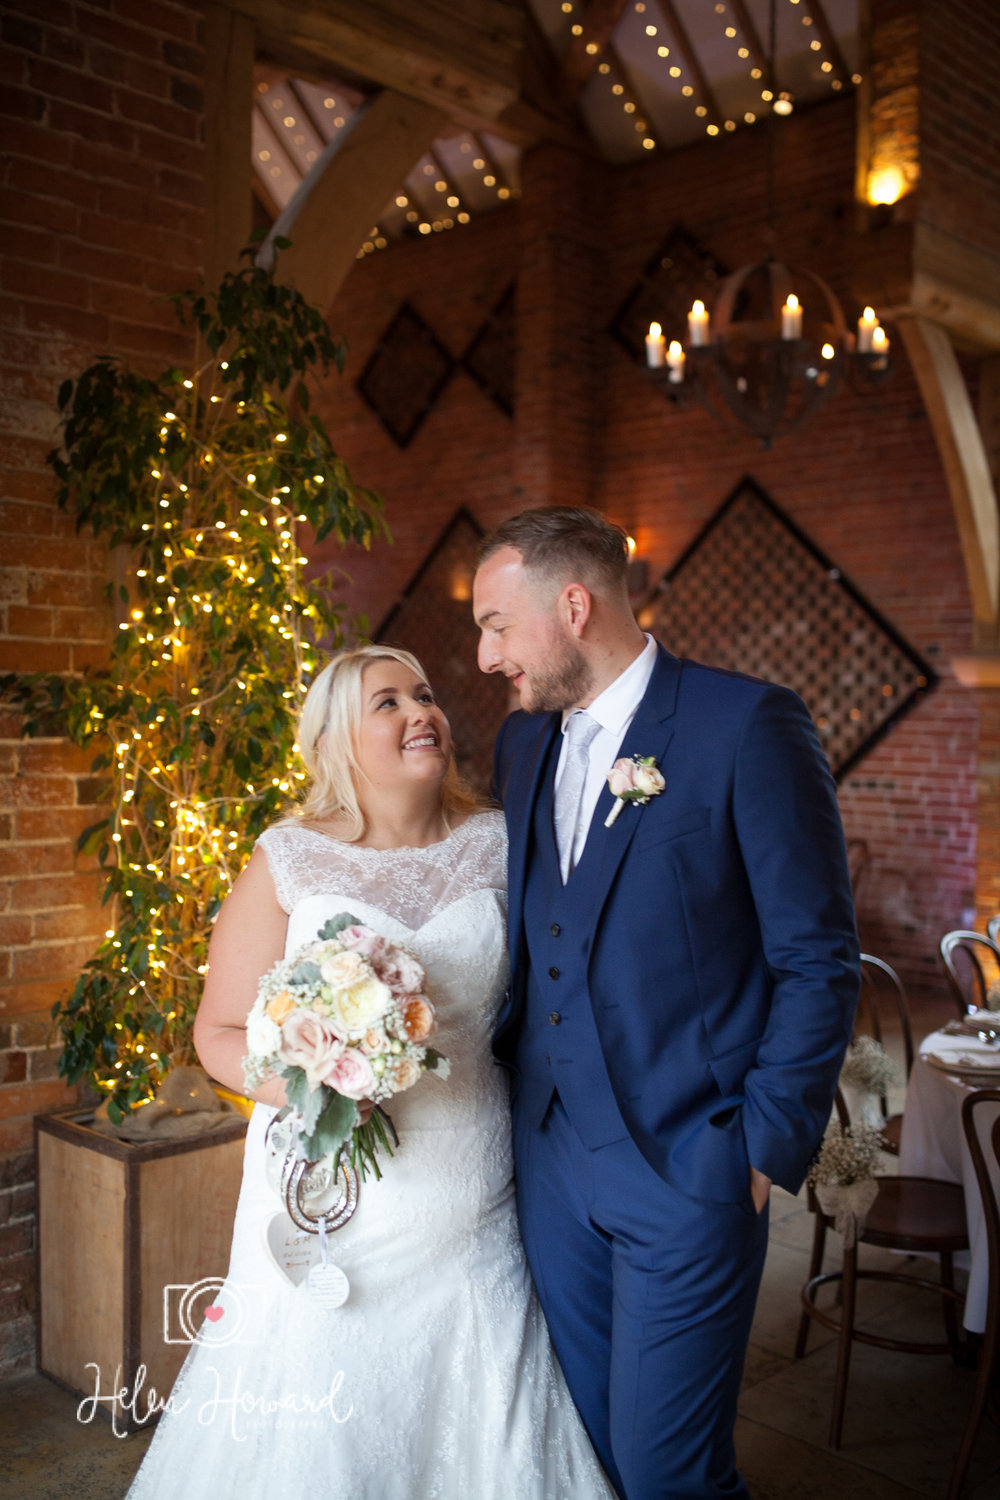 Shustoke Farm Barns Wedding Photography by Helen Howard-29.jpg